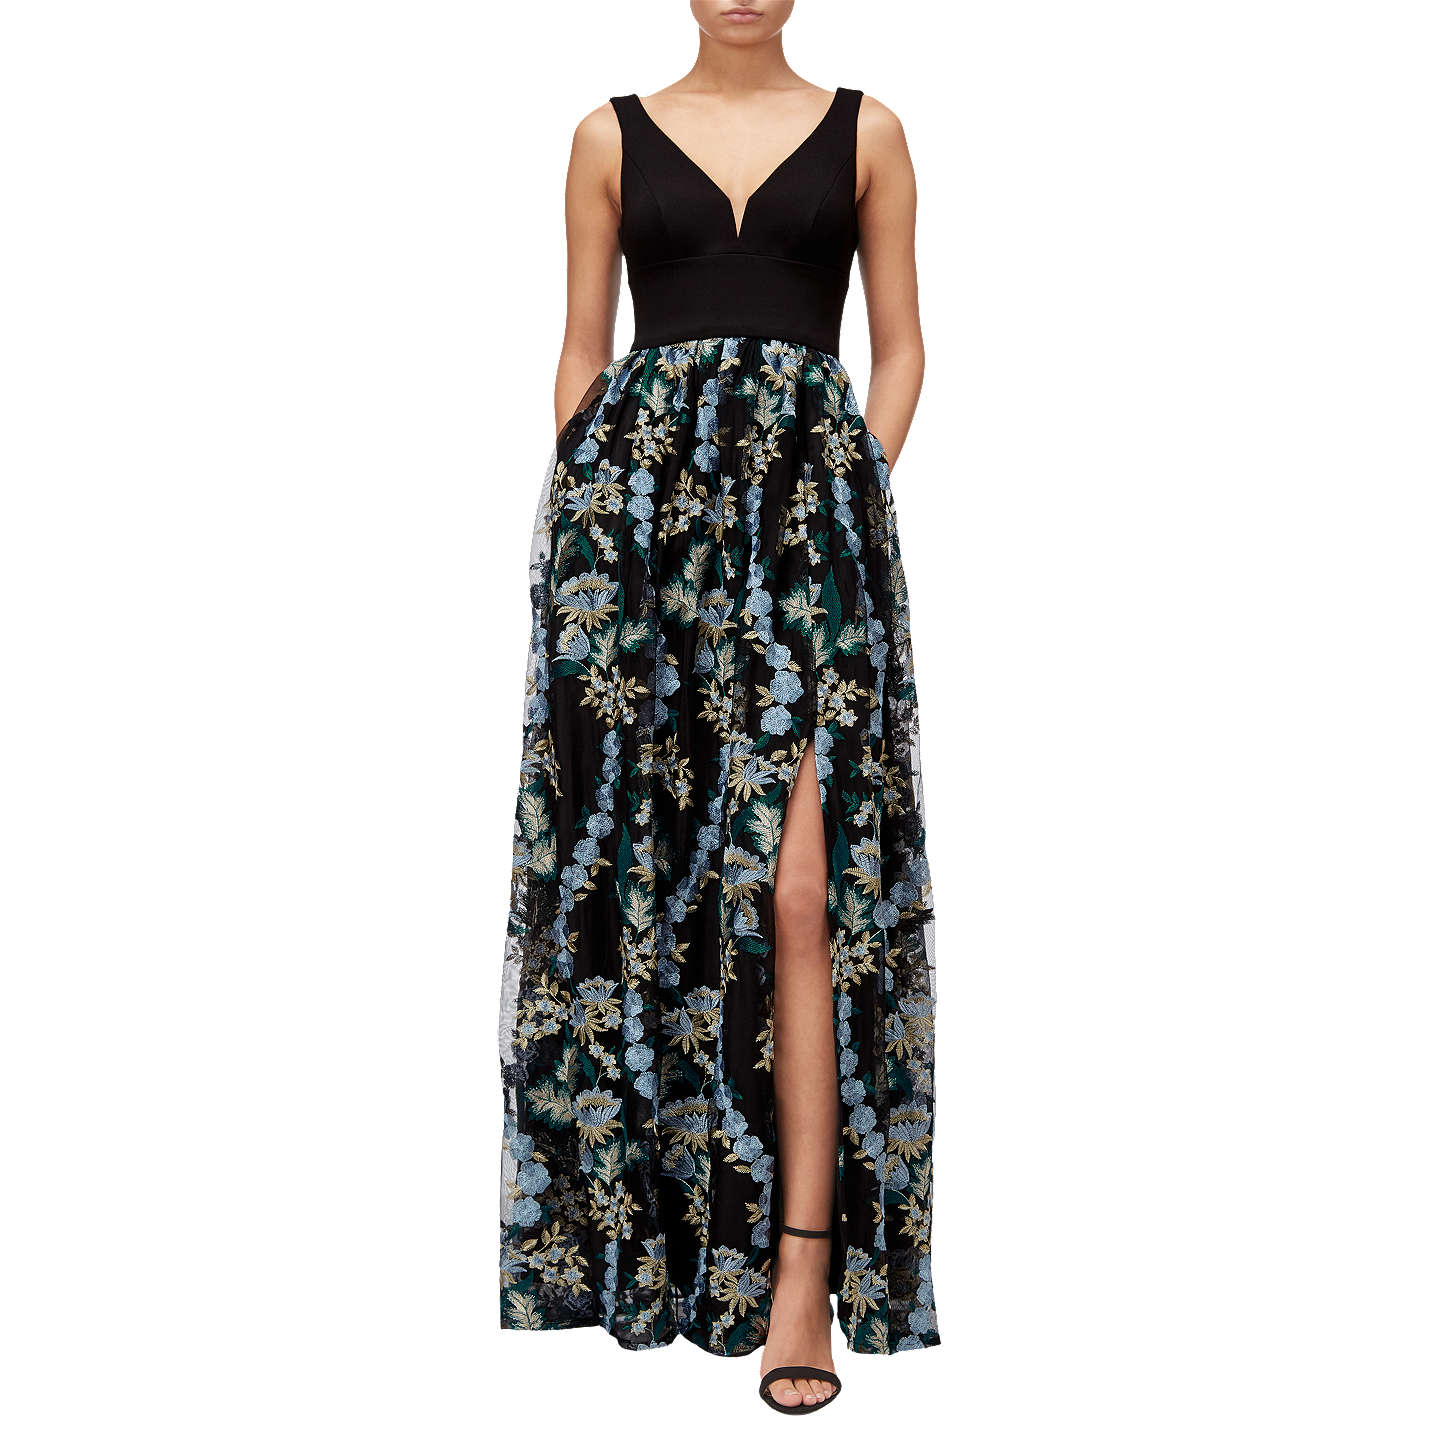 Adrianna Papell Embroidered Tulle Maxi Dress, Black/Multi at John Lewis